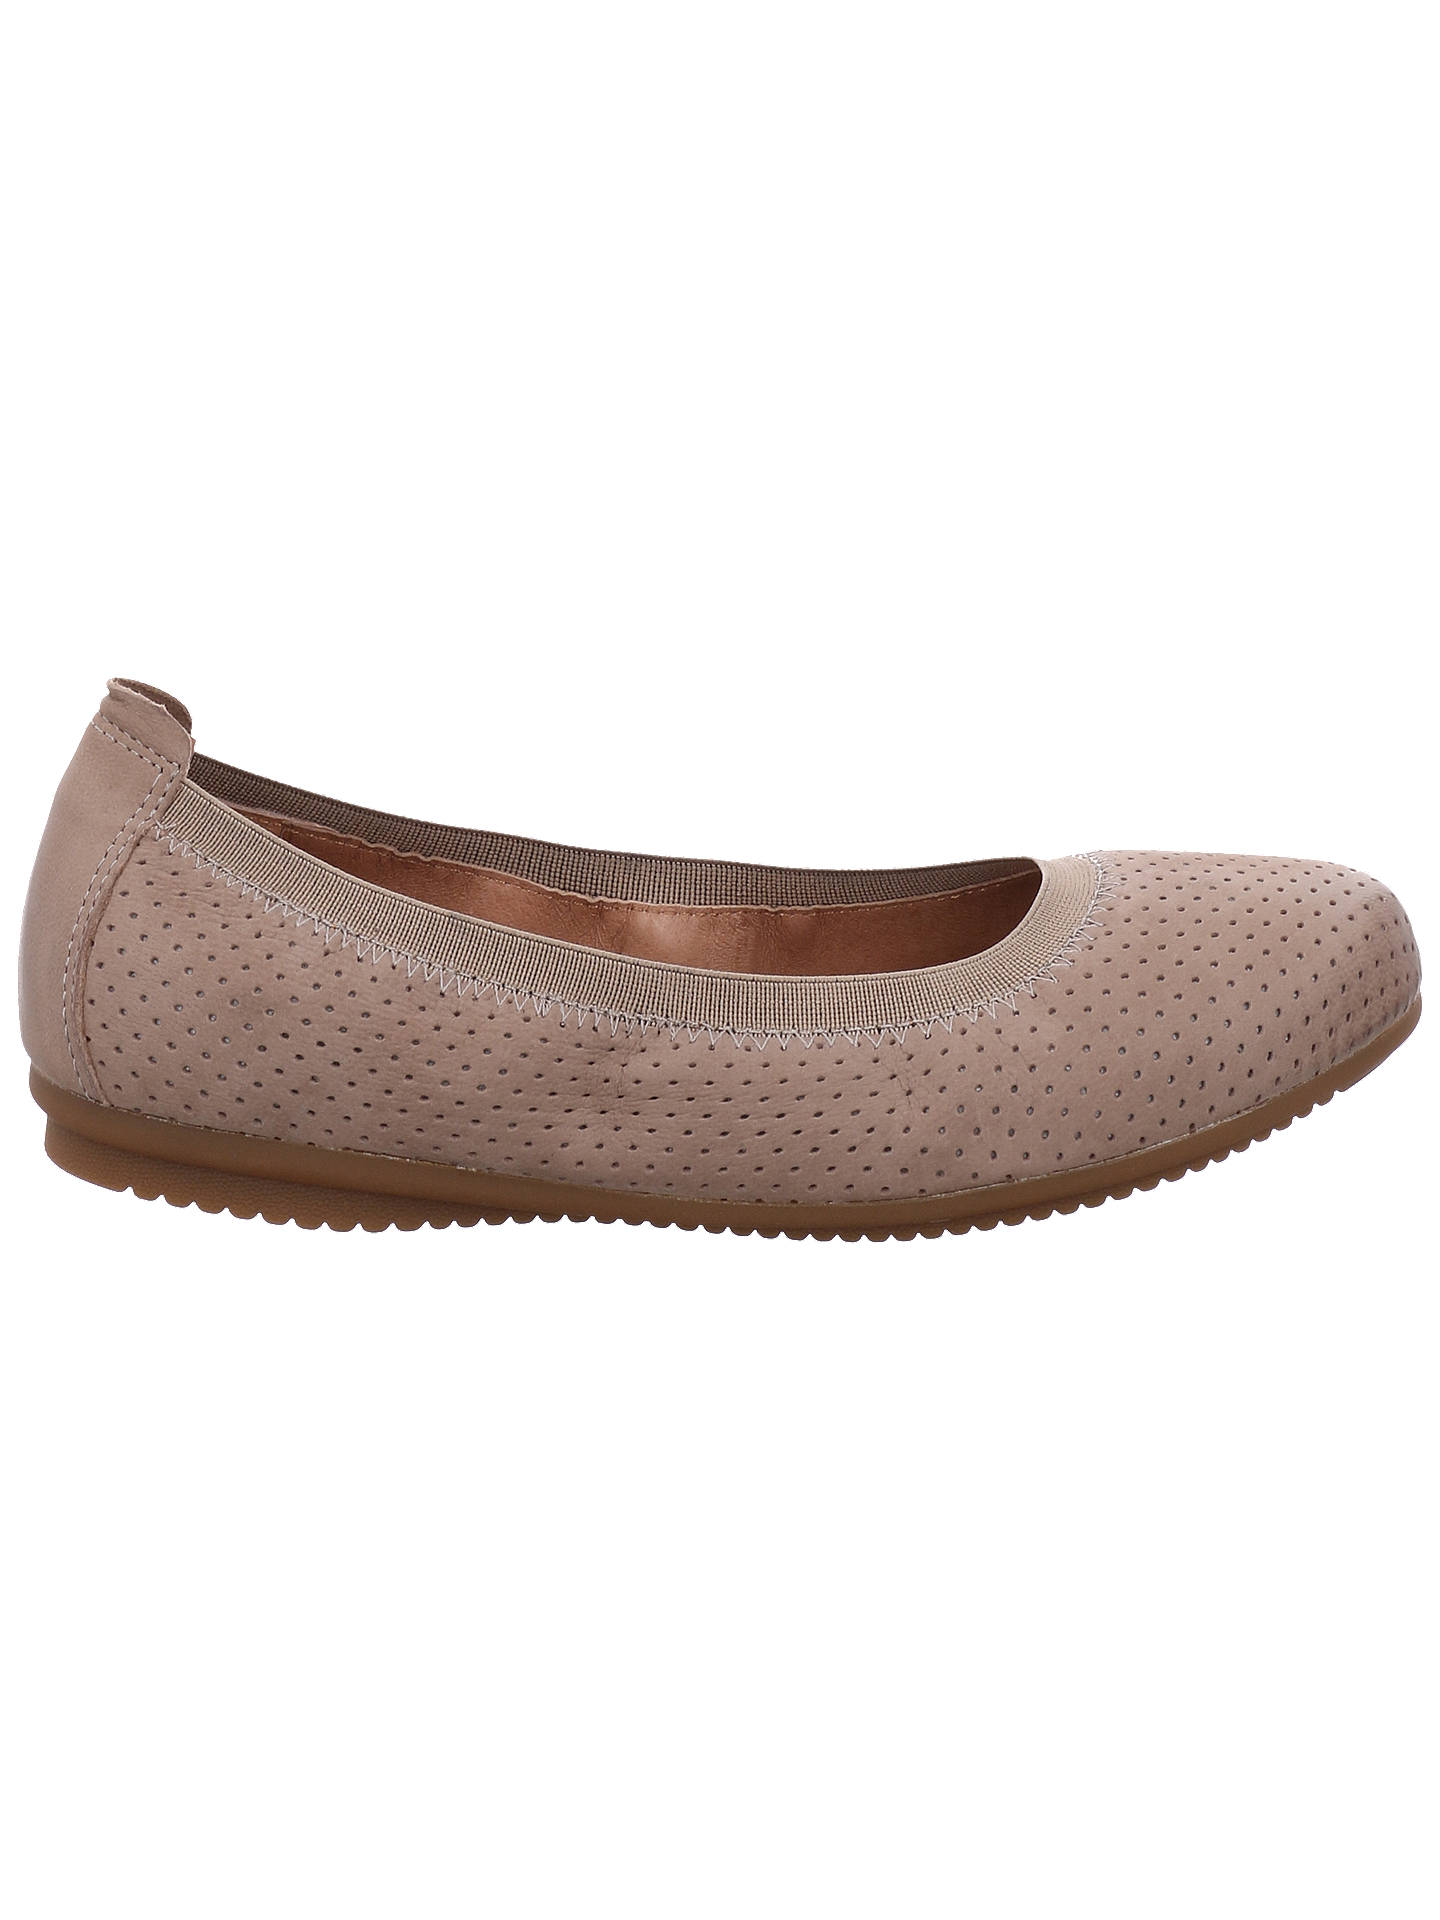 John Lewis Womens Shoes Trainers